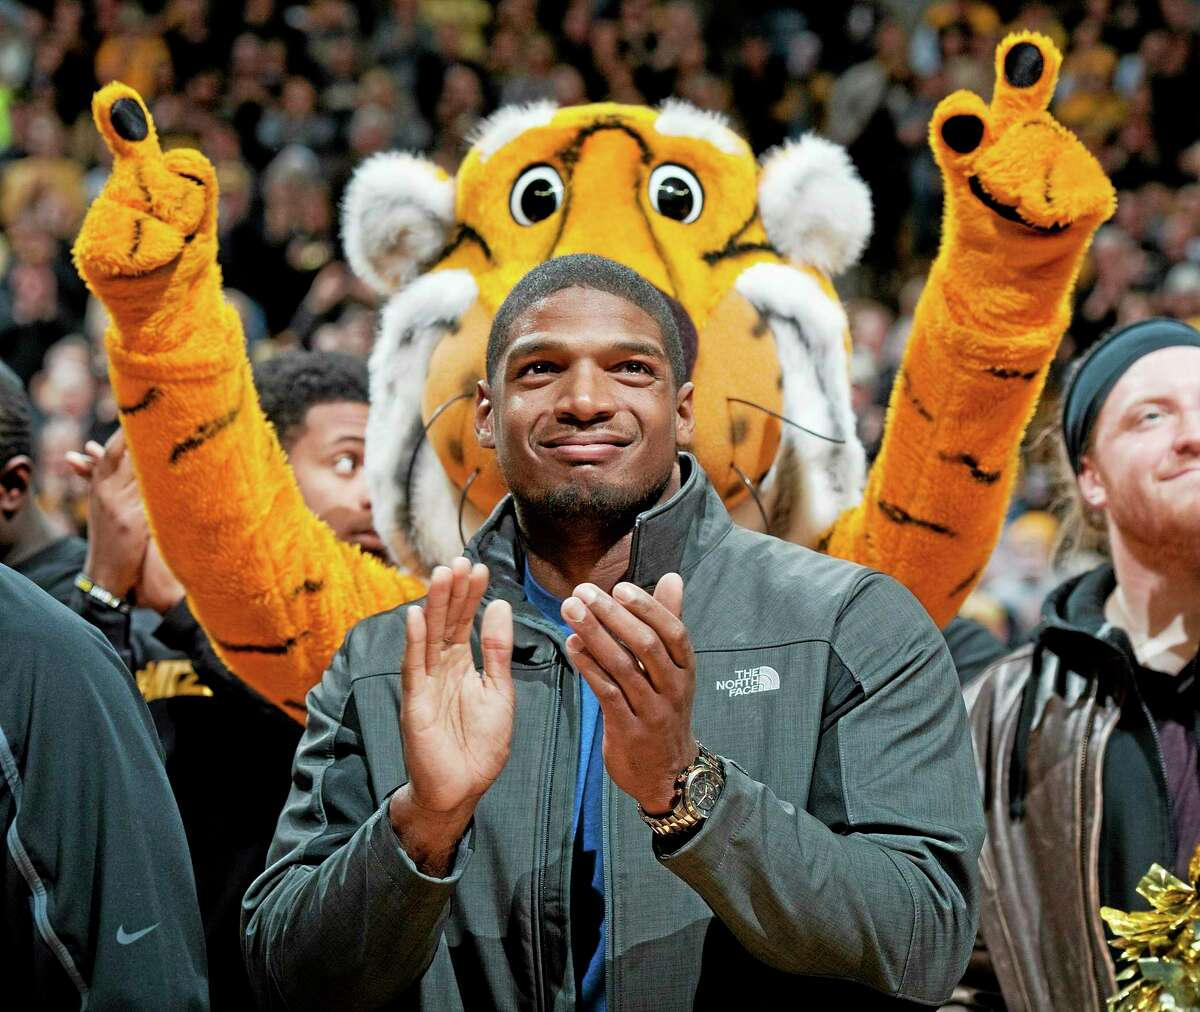 Michael Sam will be staying in Missouri after being drafted by the St. Louis Rams.